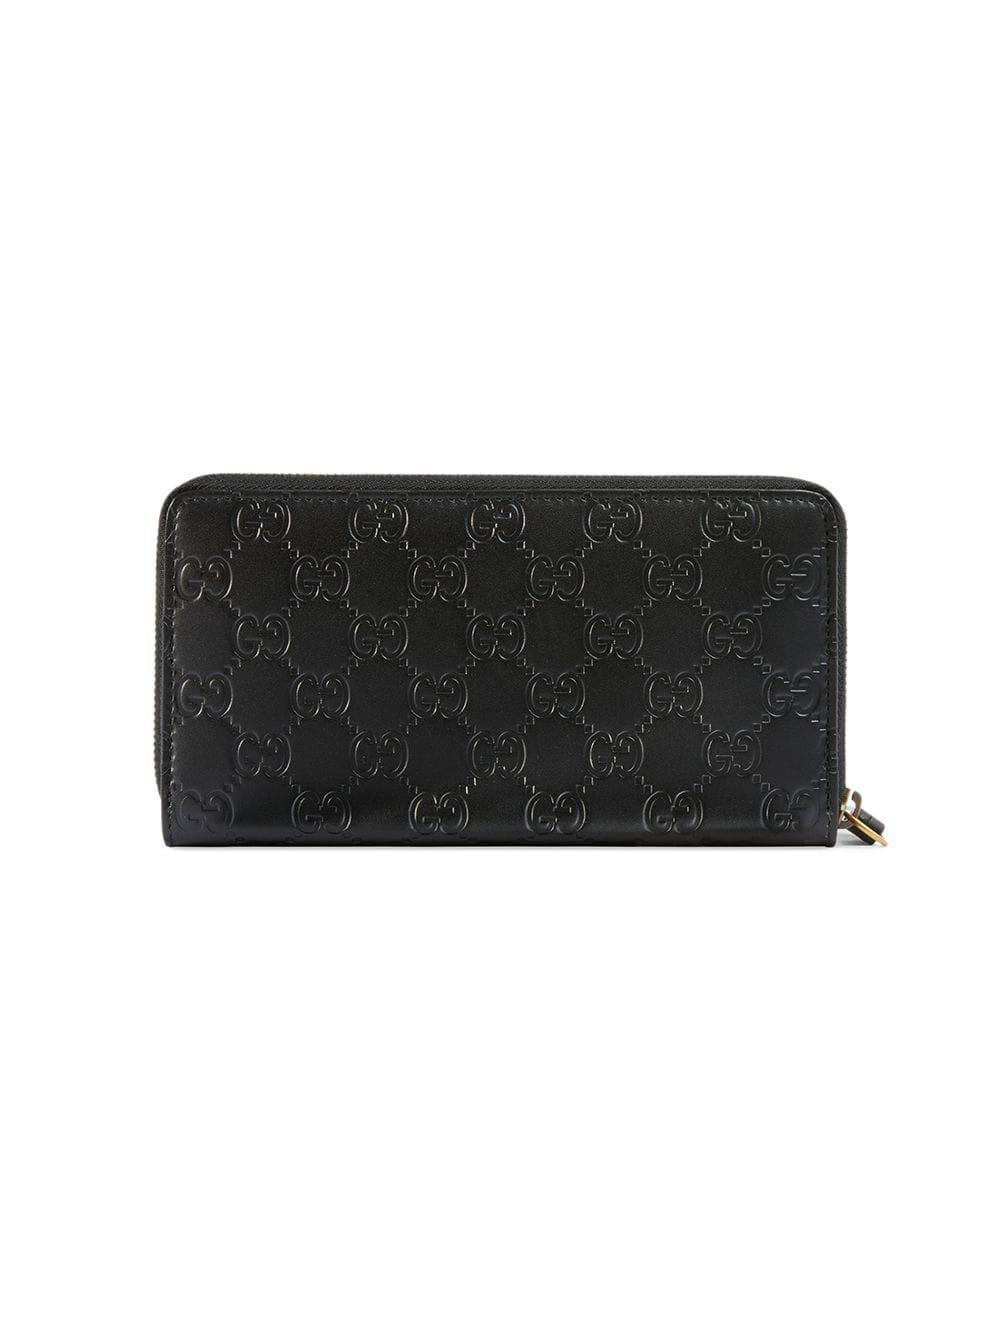 47a0950ad5a Lyst - Gucci Signature Zip Around Wallet With Cat in Black